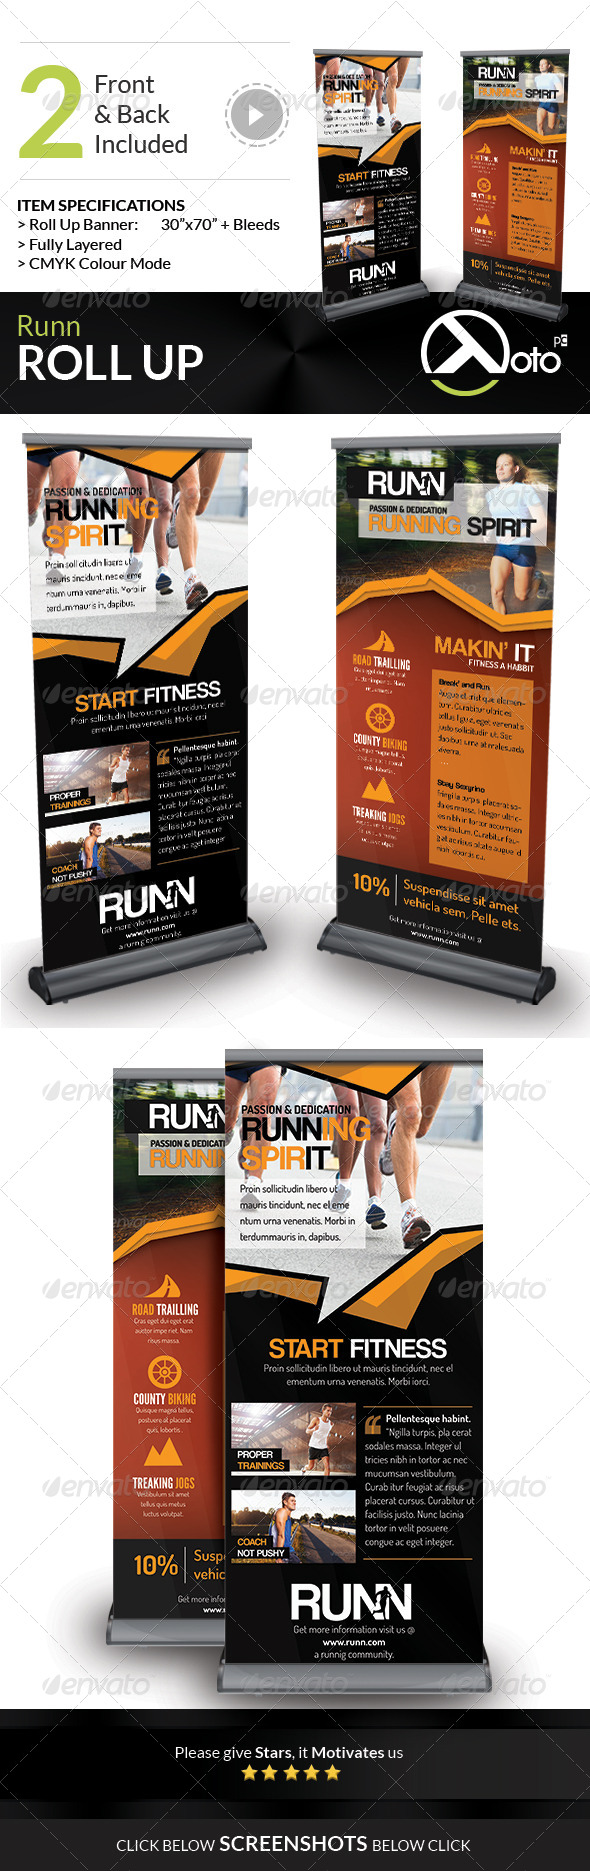 Runn Marathon Running Club Fitness Rollup Banners - Signage Print Templates